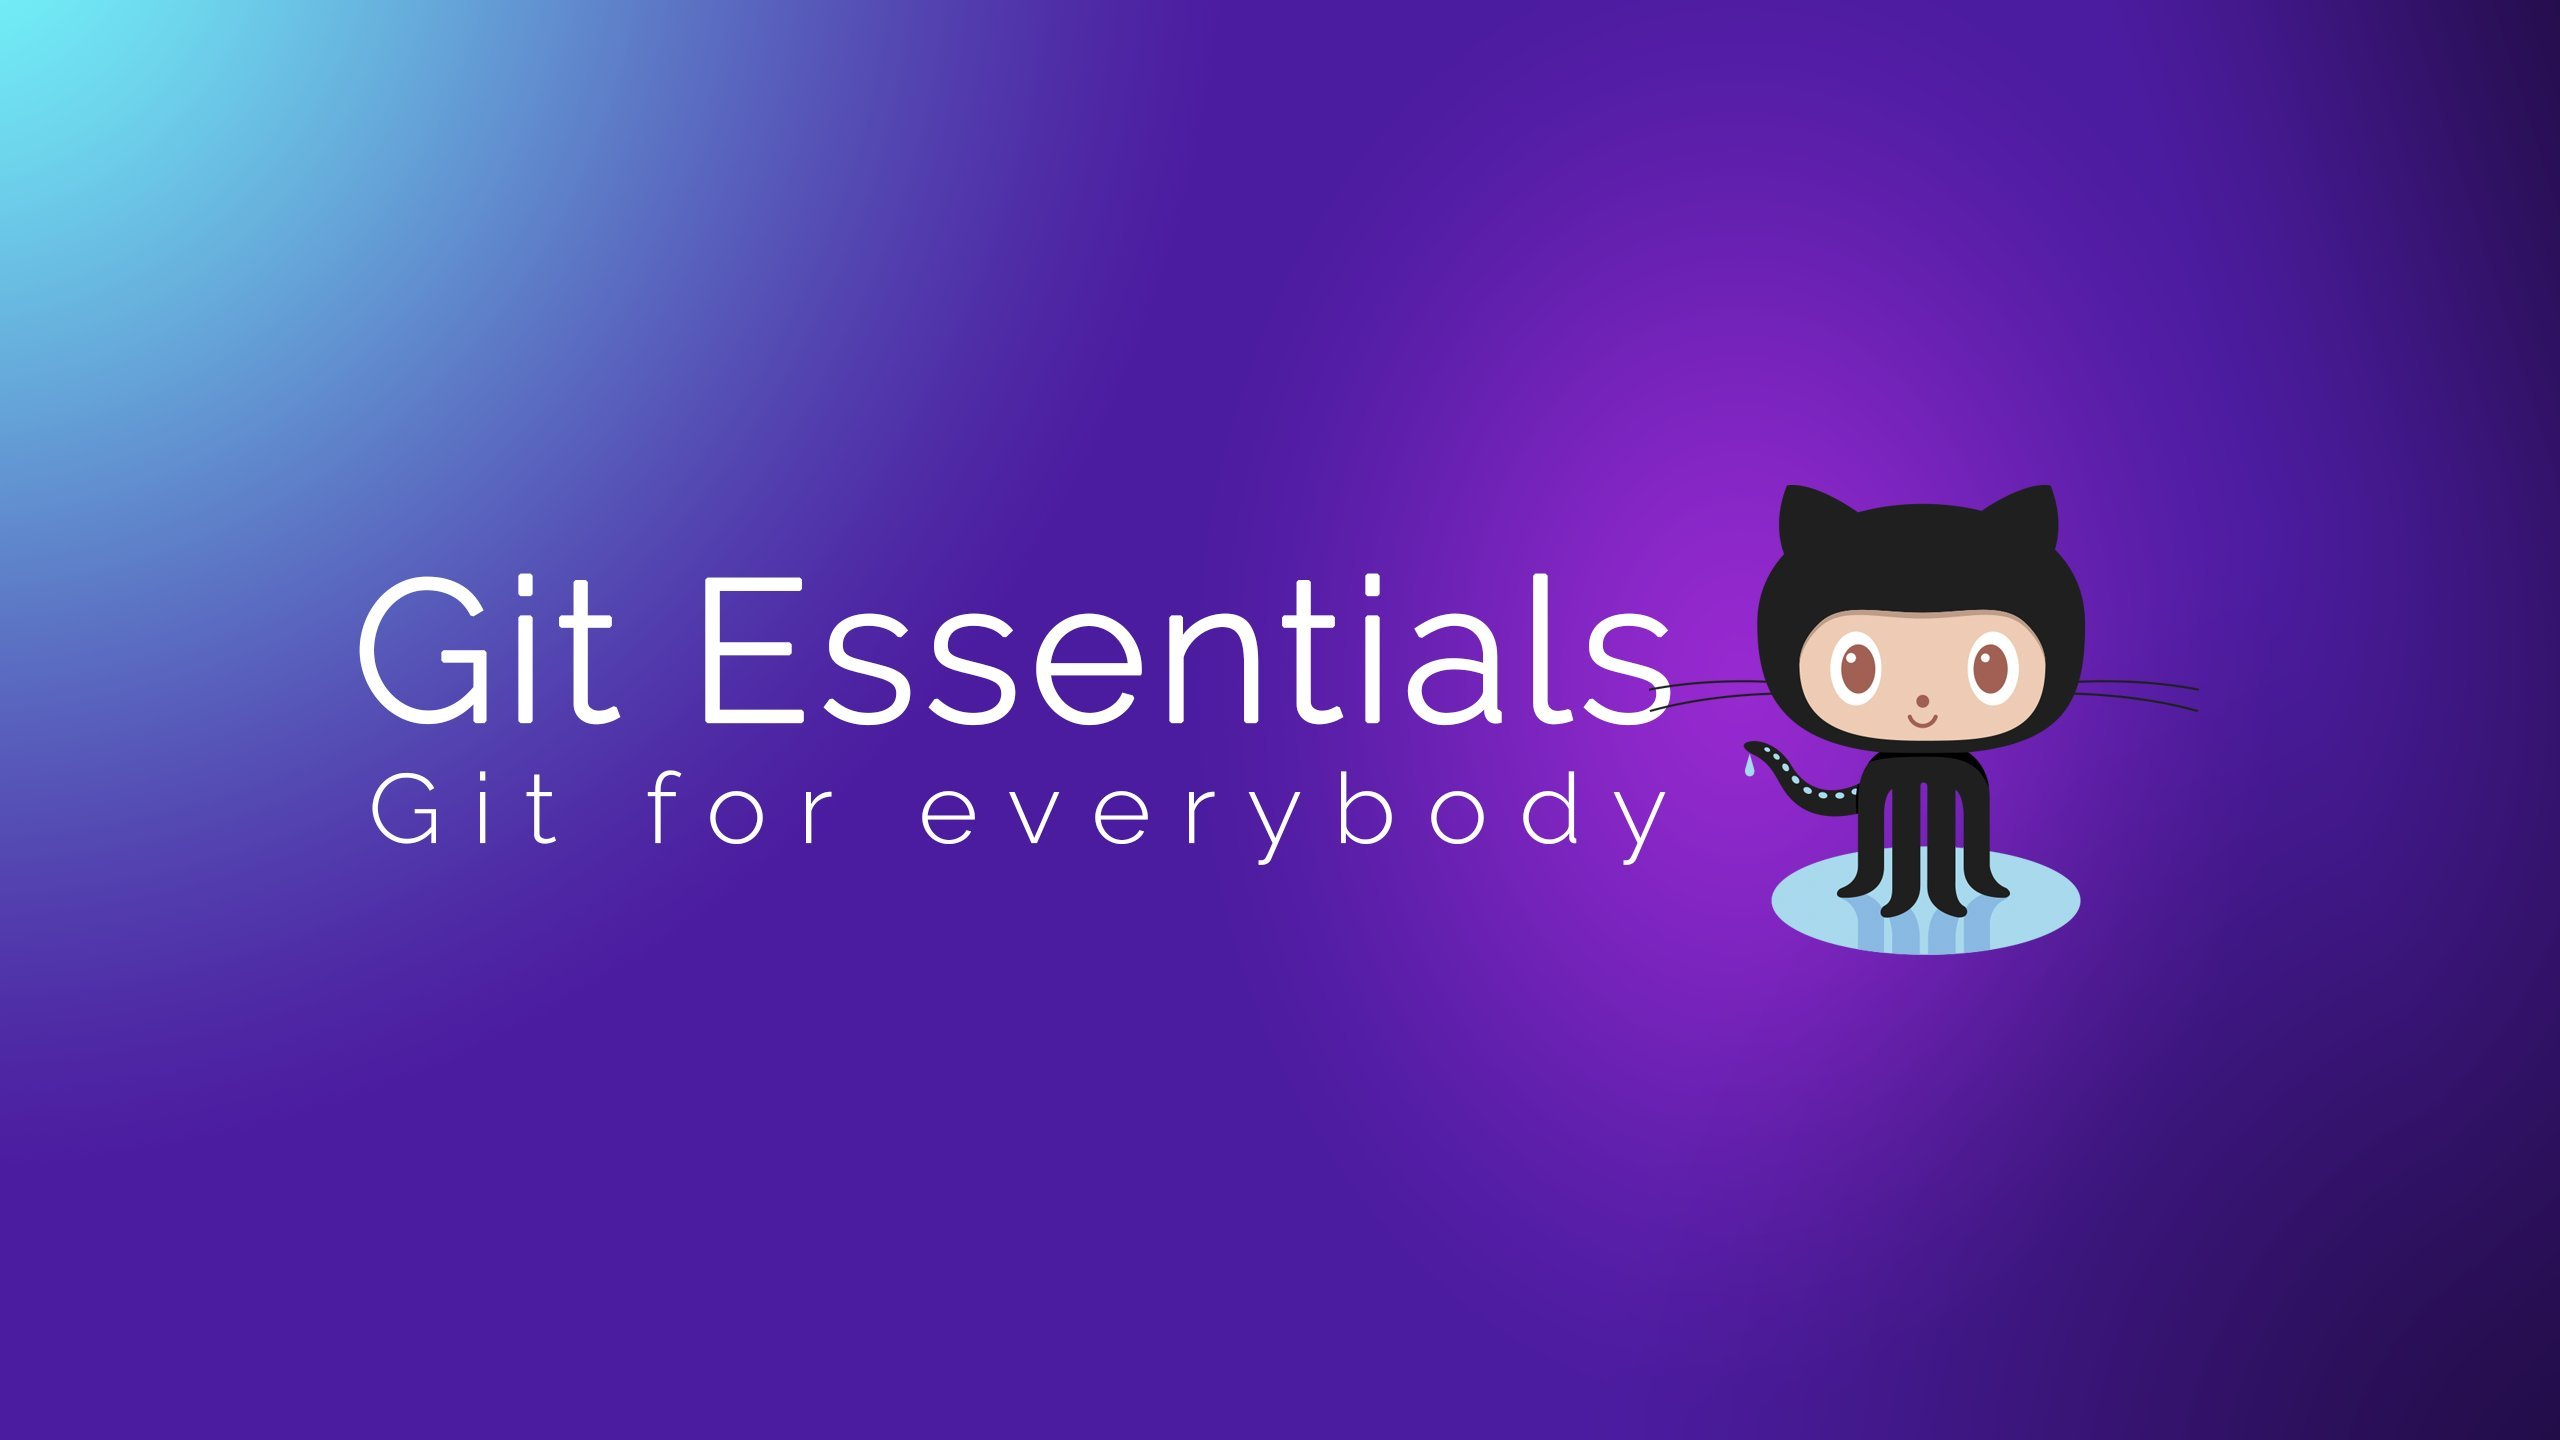 Git Essentials - Learn Git & Github from scratch!